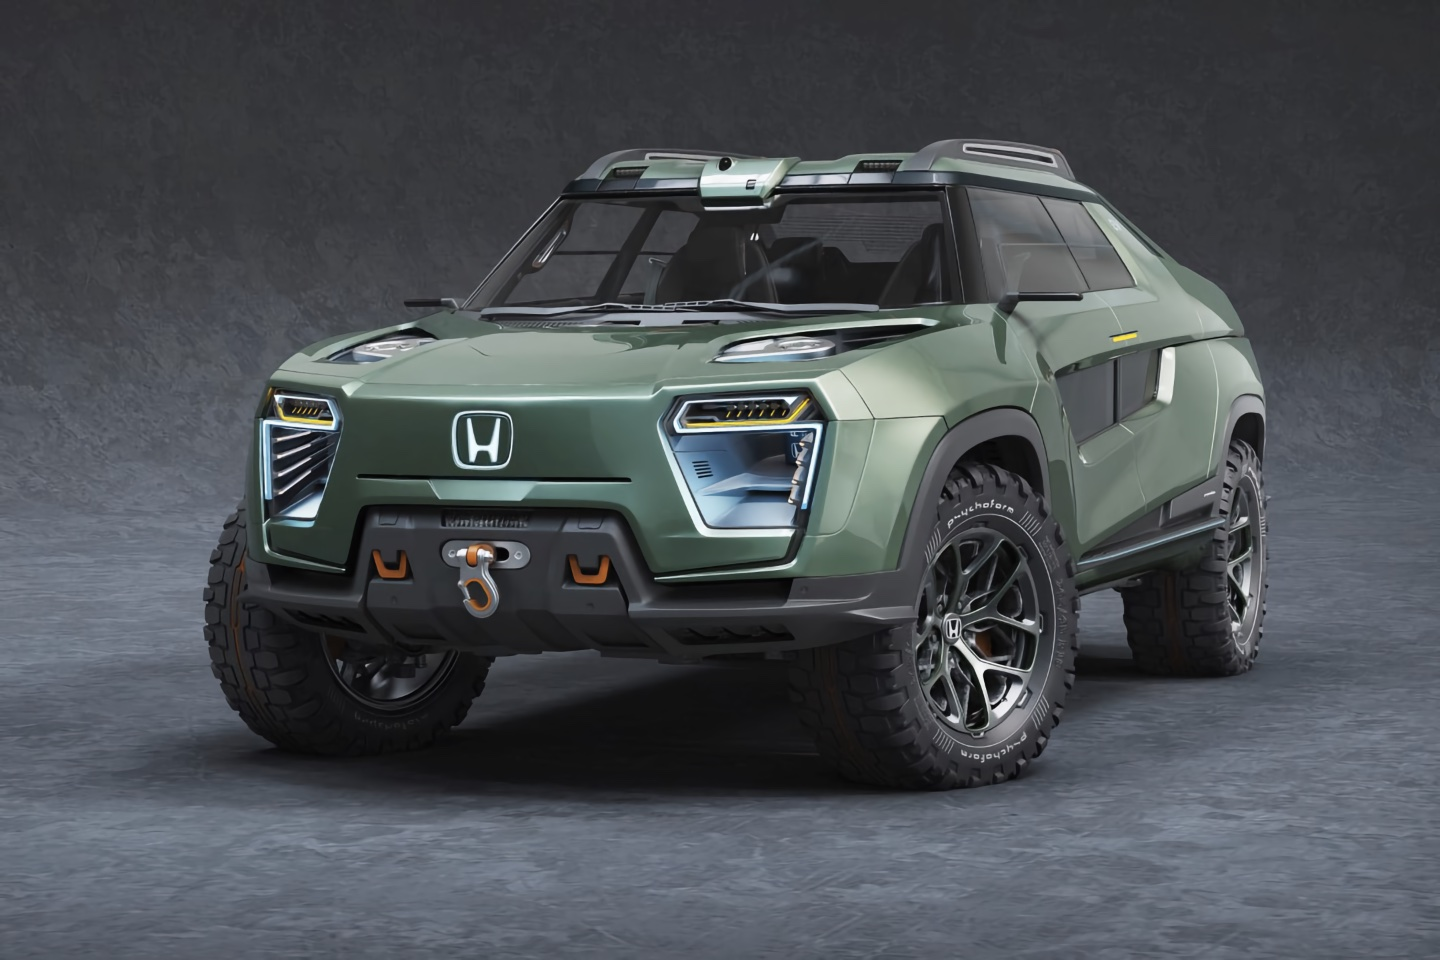 The Top 10 Automotive Concepts that automotive enthusiasts will be itching to see on the road!